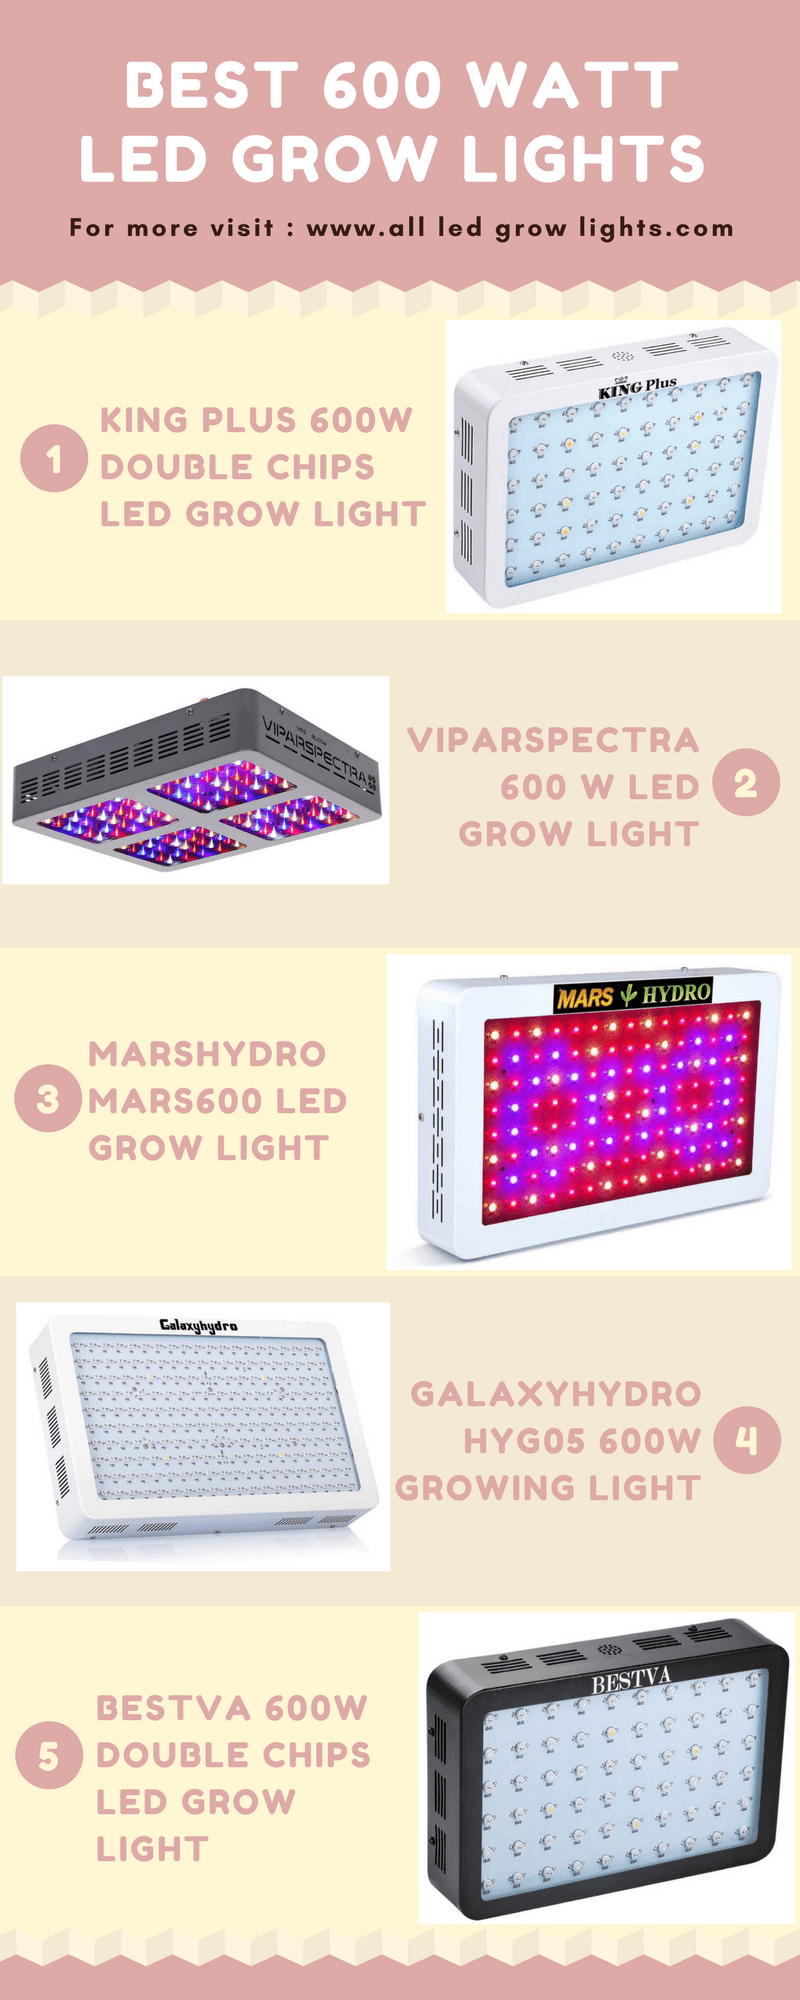 best 600 watt led grow light info graph